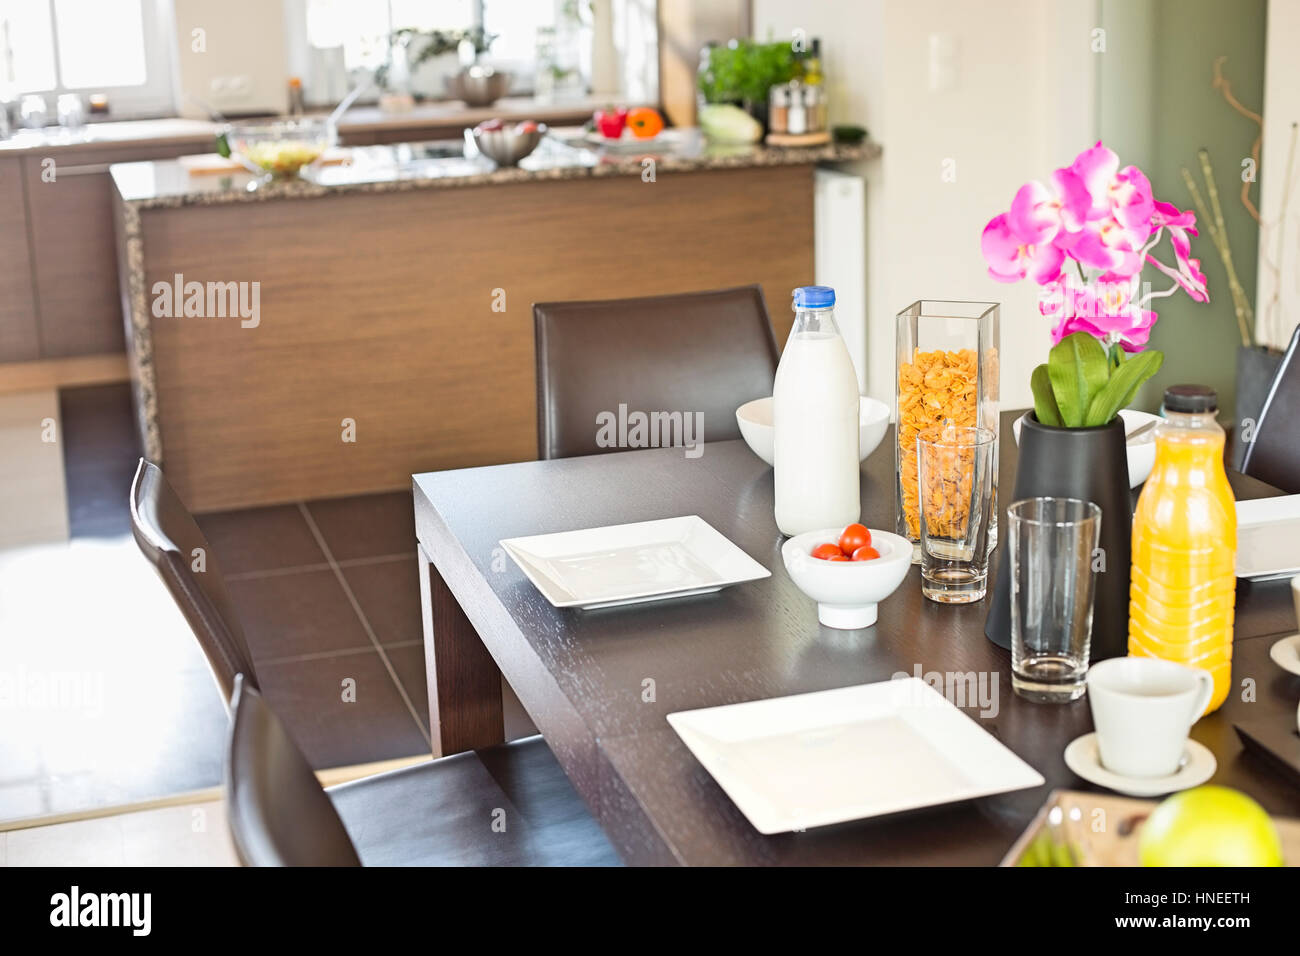 Breakfast on dining table at home - Stock Image